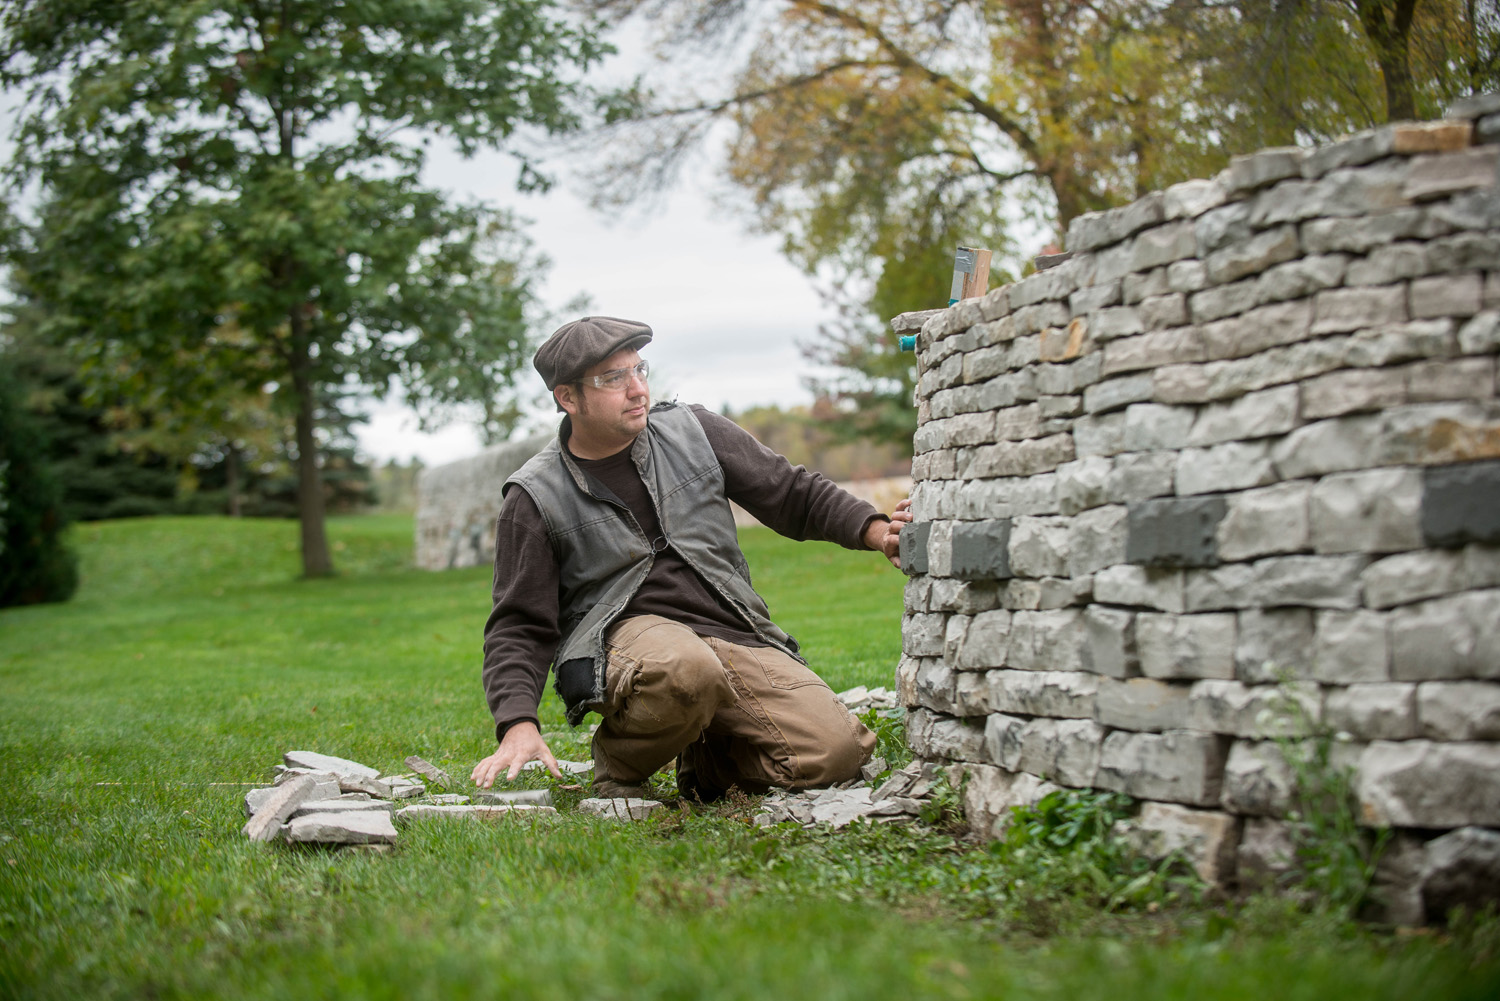 Daniel Arabella, of Arabella Stone Co. feels for the necessary stone that will find its new home nestled in a beautiful drystone wall at The Gardens of Castle Rock. Daniel efficiently works his craft by using his sense of touch rather than his vision to discover the missing puzzle pieces. Some times they need to be slightly shaped, other times, they are a perfect match.